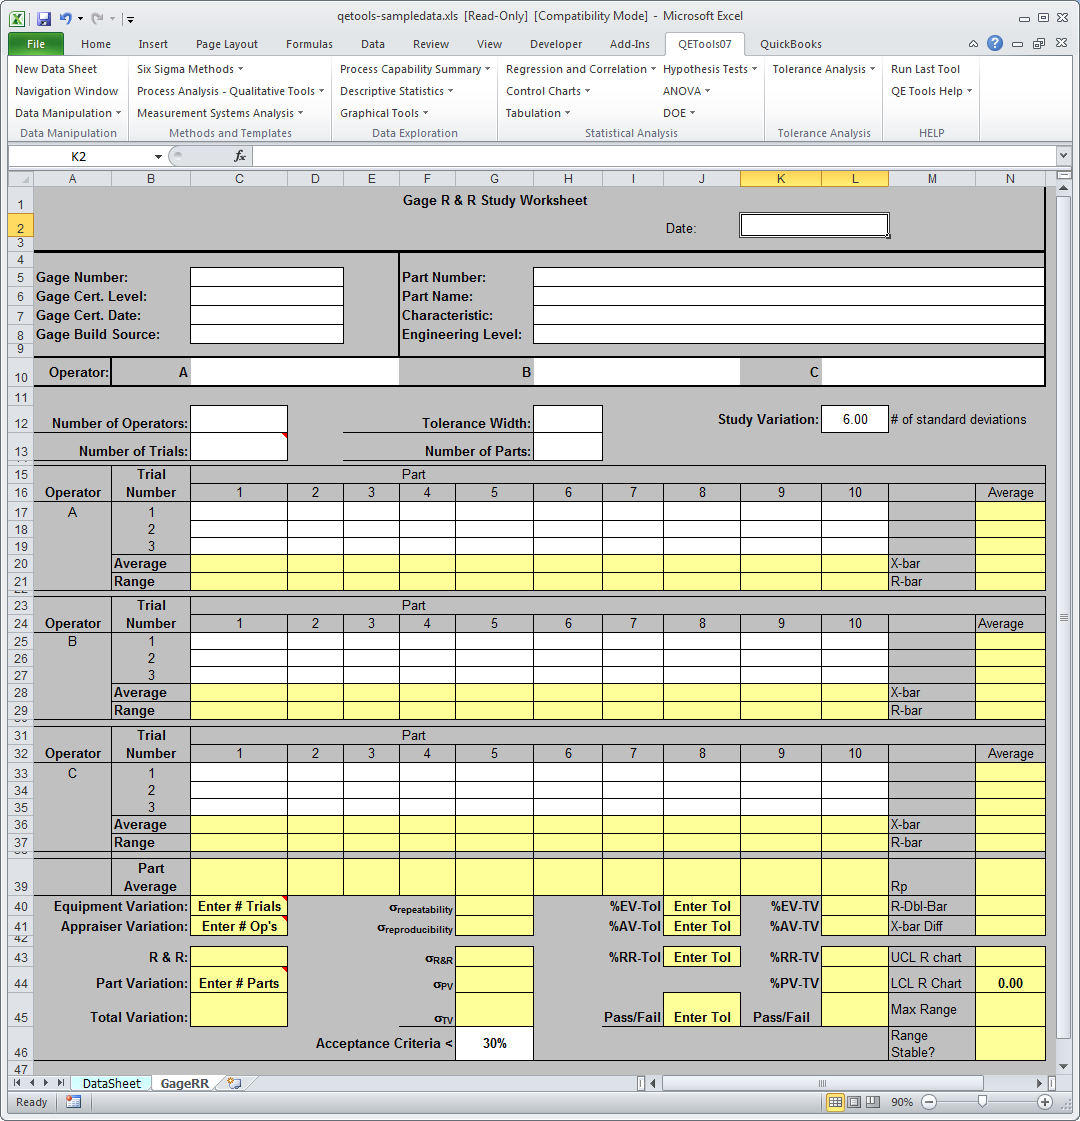 DMAIC / Six Sigma Excel Add-in - Free Trial - QETools